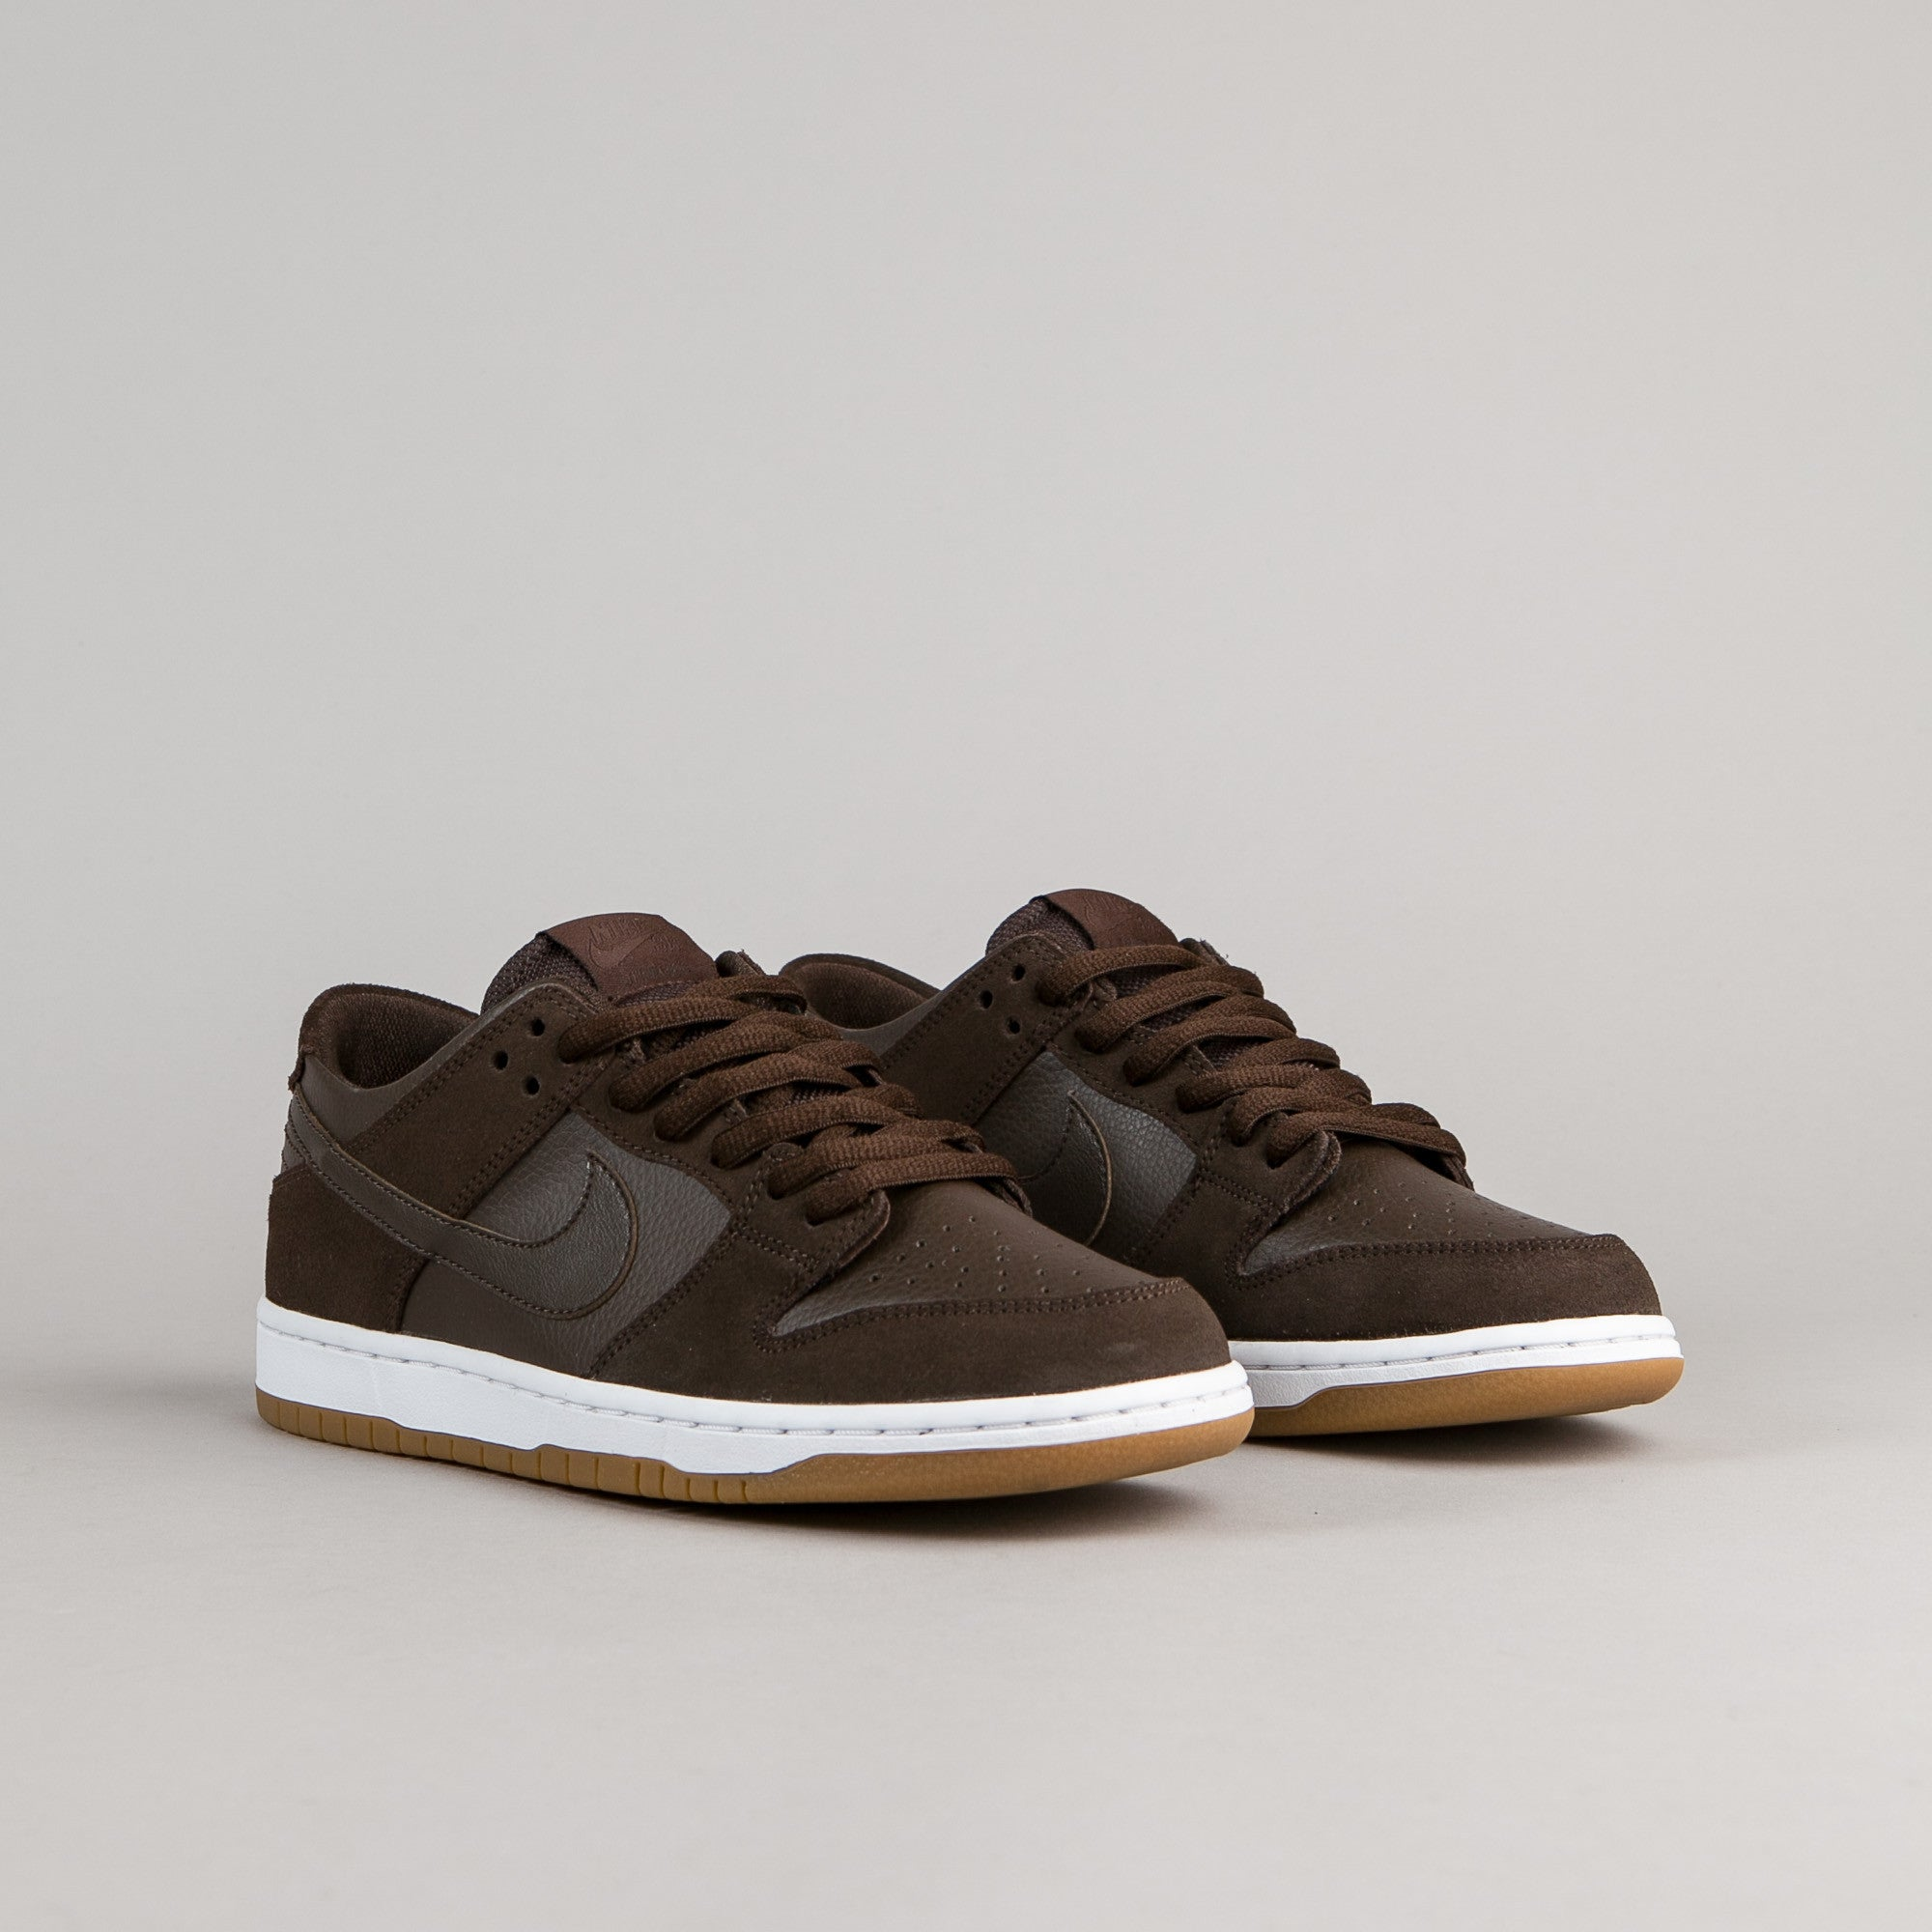 best service 493bb 15f3e ... Nike SB Dunk Low Pro Ishod Wair Shoes - Baroque Brown  Baroque Brown -  White ...